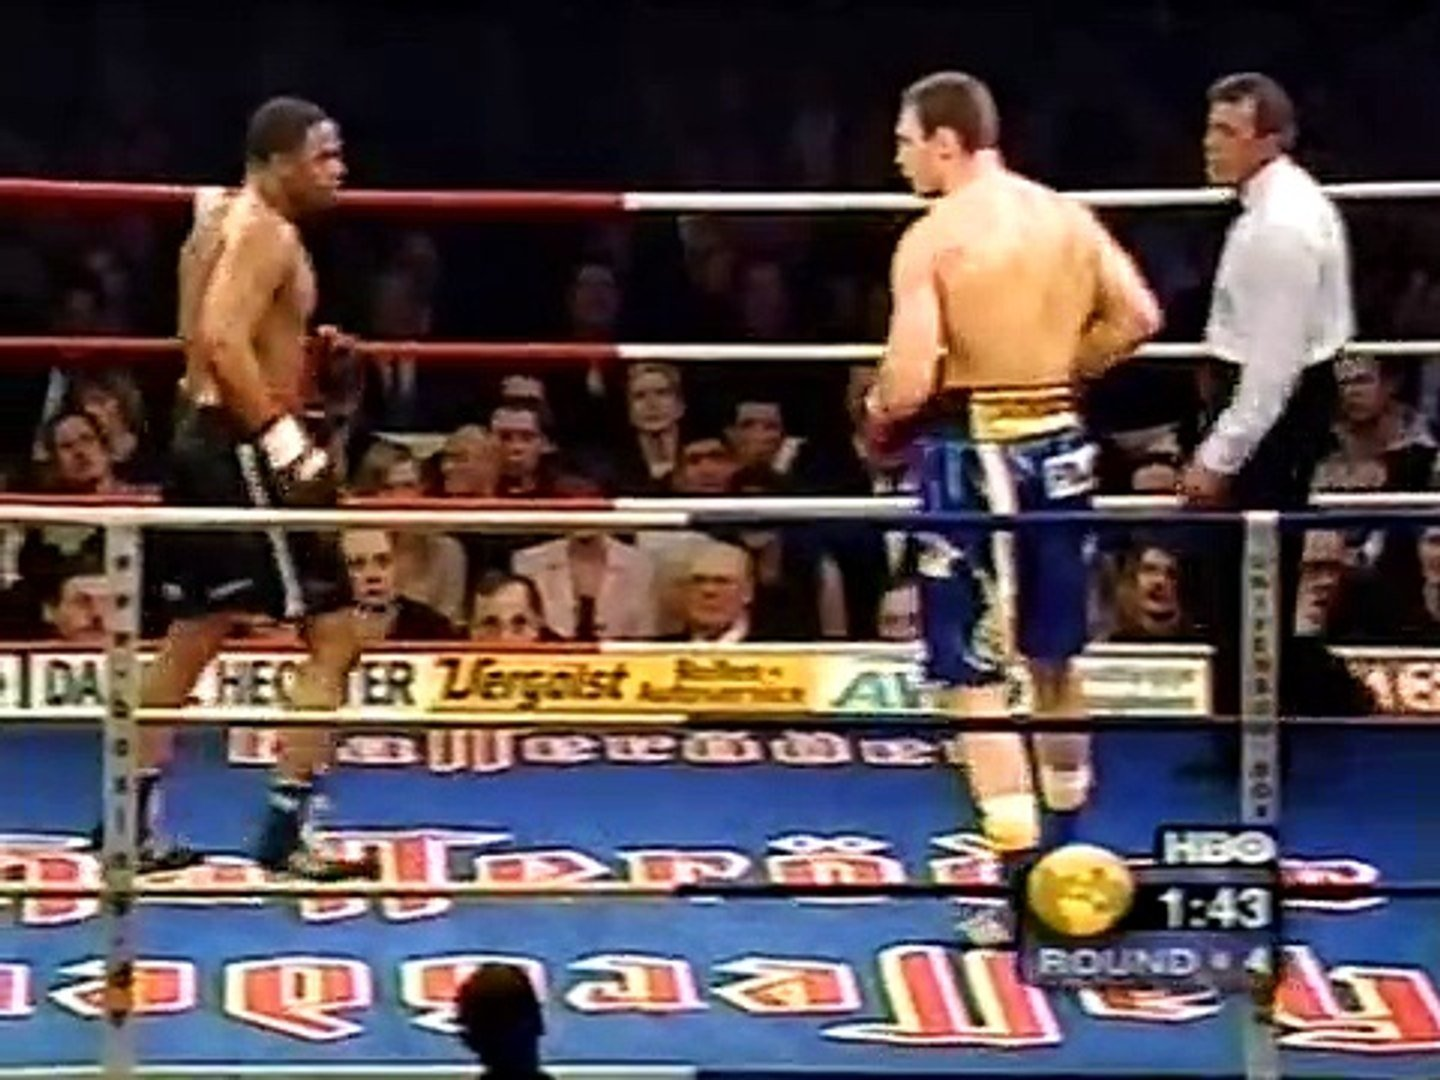 """Boxing News - Former heavyweight champion Vitali Klitschko lost just two fights in his entire pro career, both of them due to injury. Klitschko, he of the """"Iron Fist"""" and the steel chin, was famously stopped on cuts in his thrilling war with Lennox Lewis, and the elder of the two Klitschko brothers remained on his stool after nine rounds with a bad shoulder in his fight with Chris Byrd."""